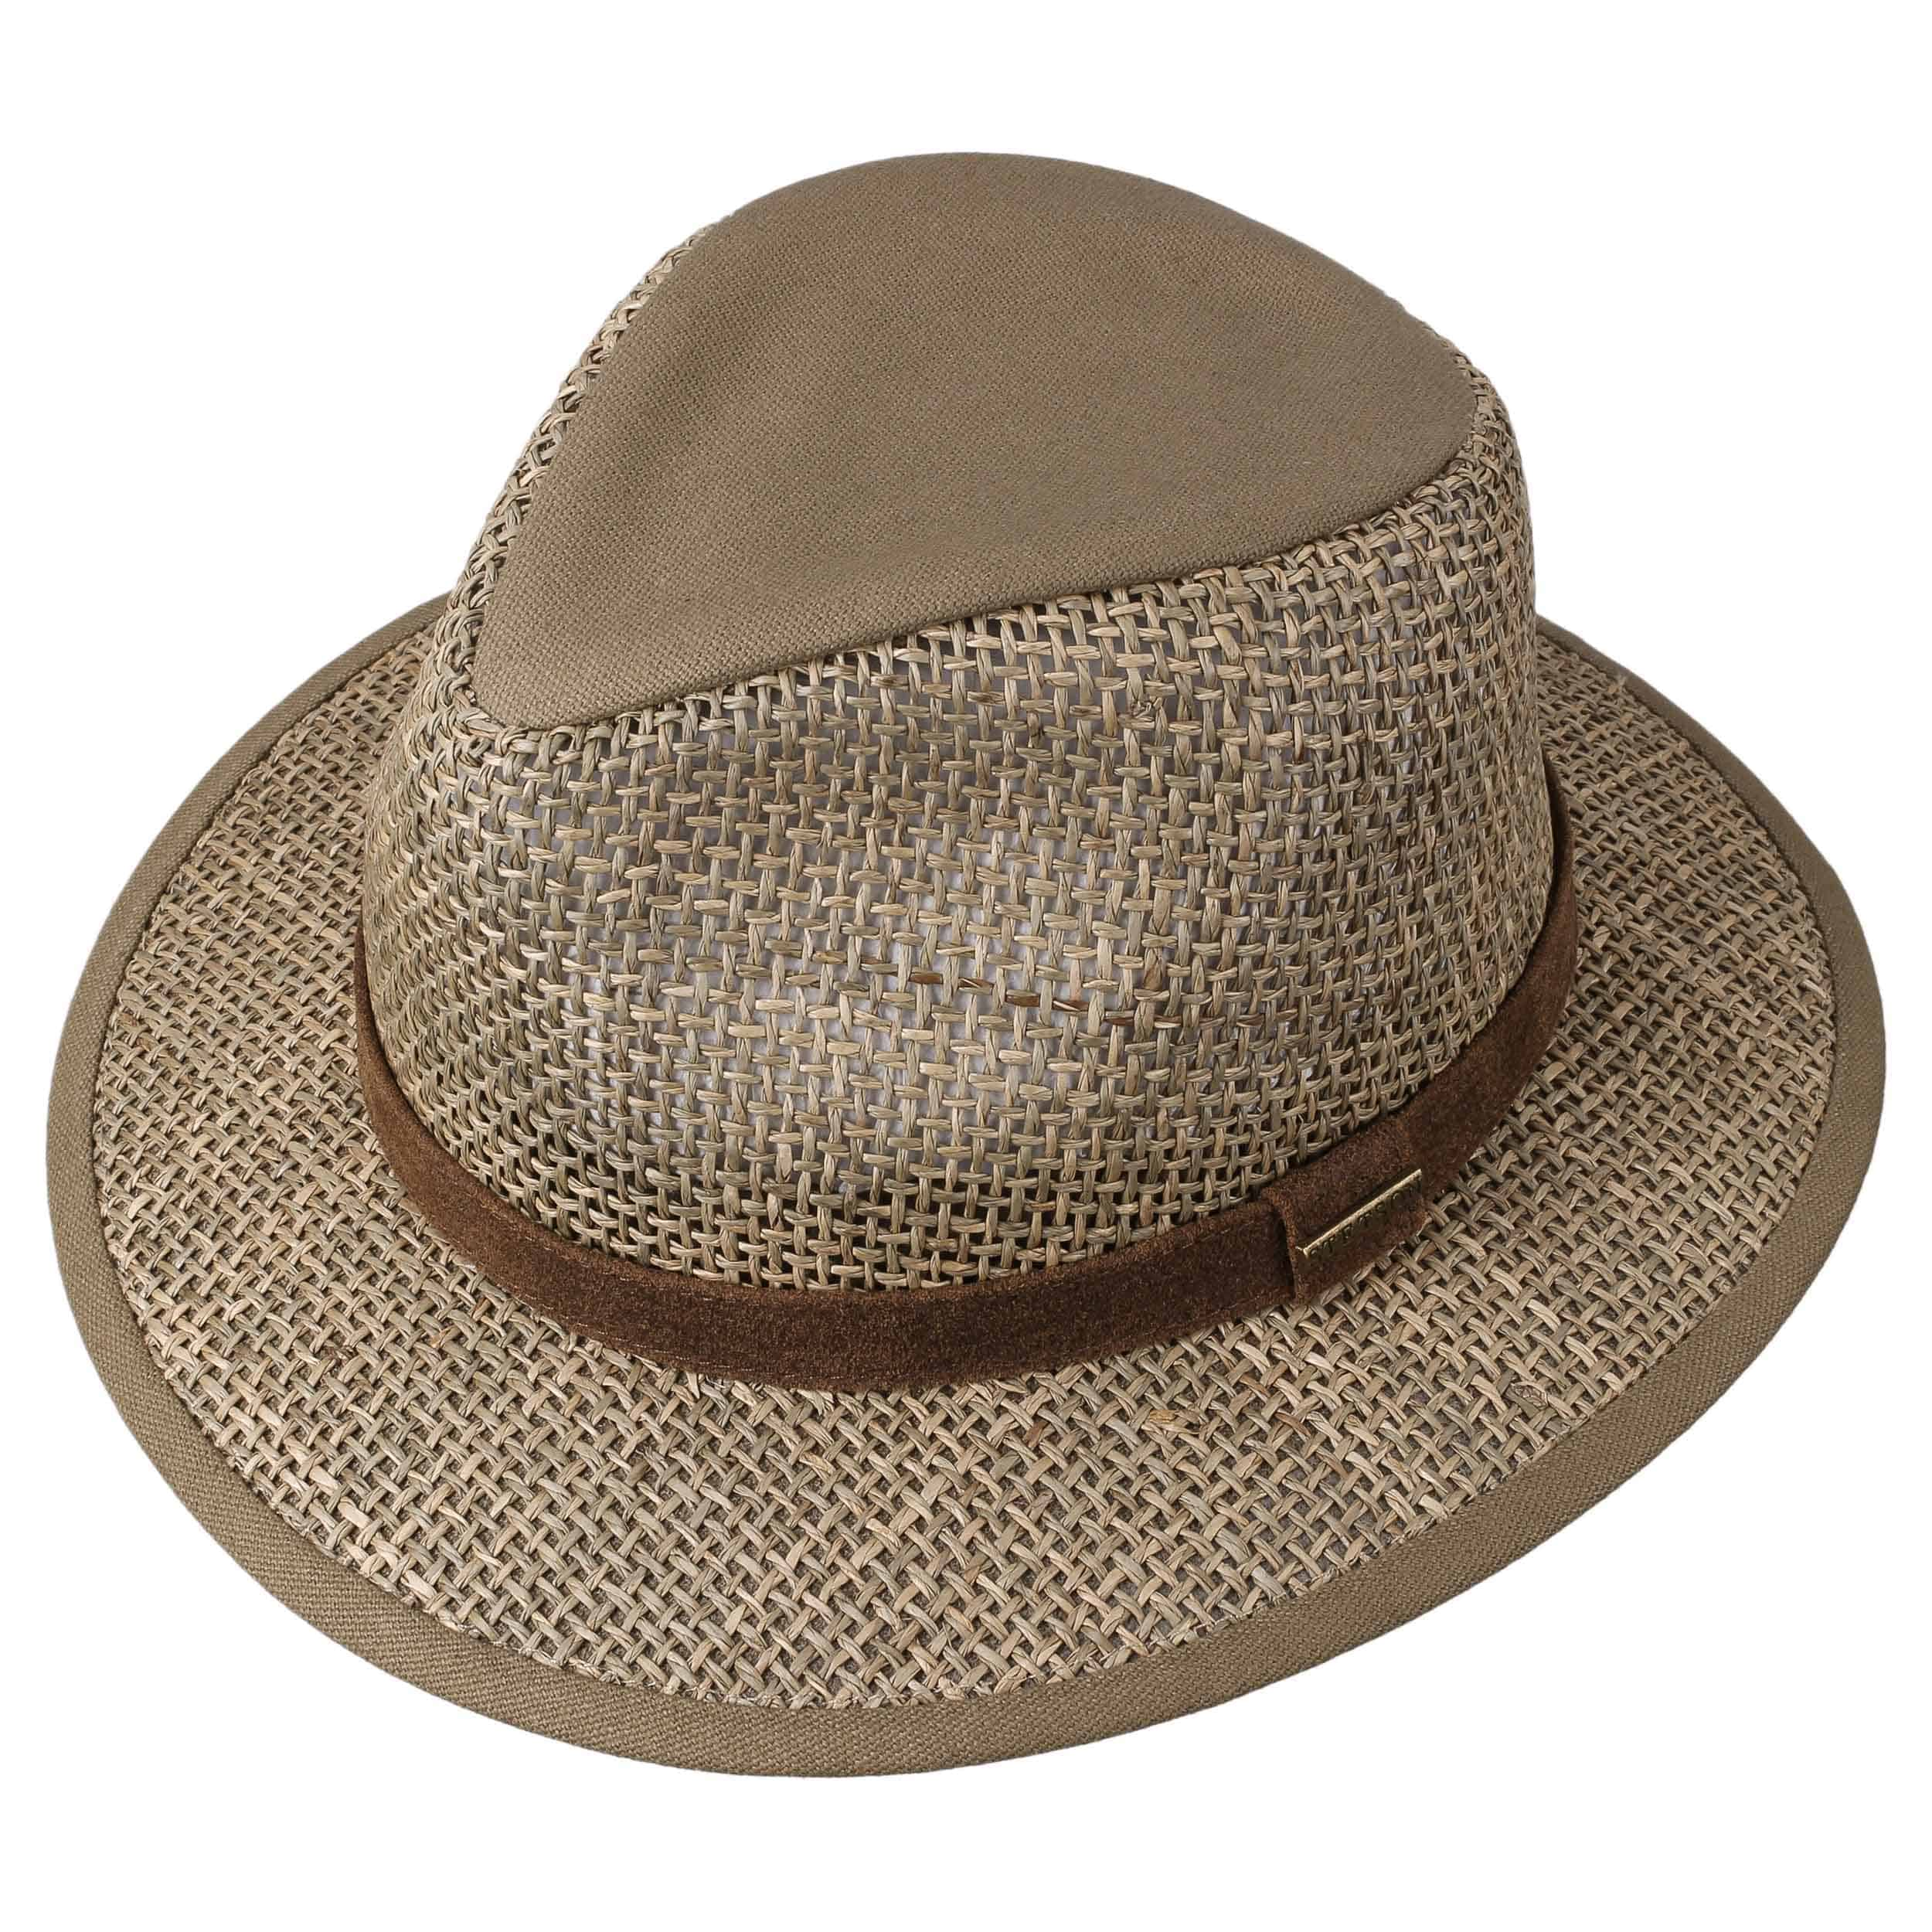 8183c89fa82 Medfield Seagrass Summer Hat by Stetson - nature 1 ...